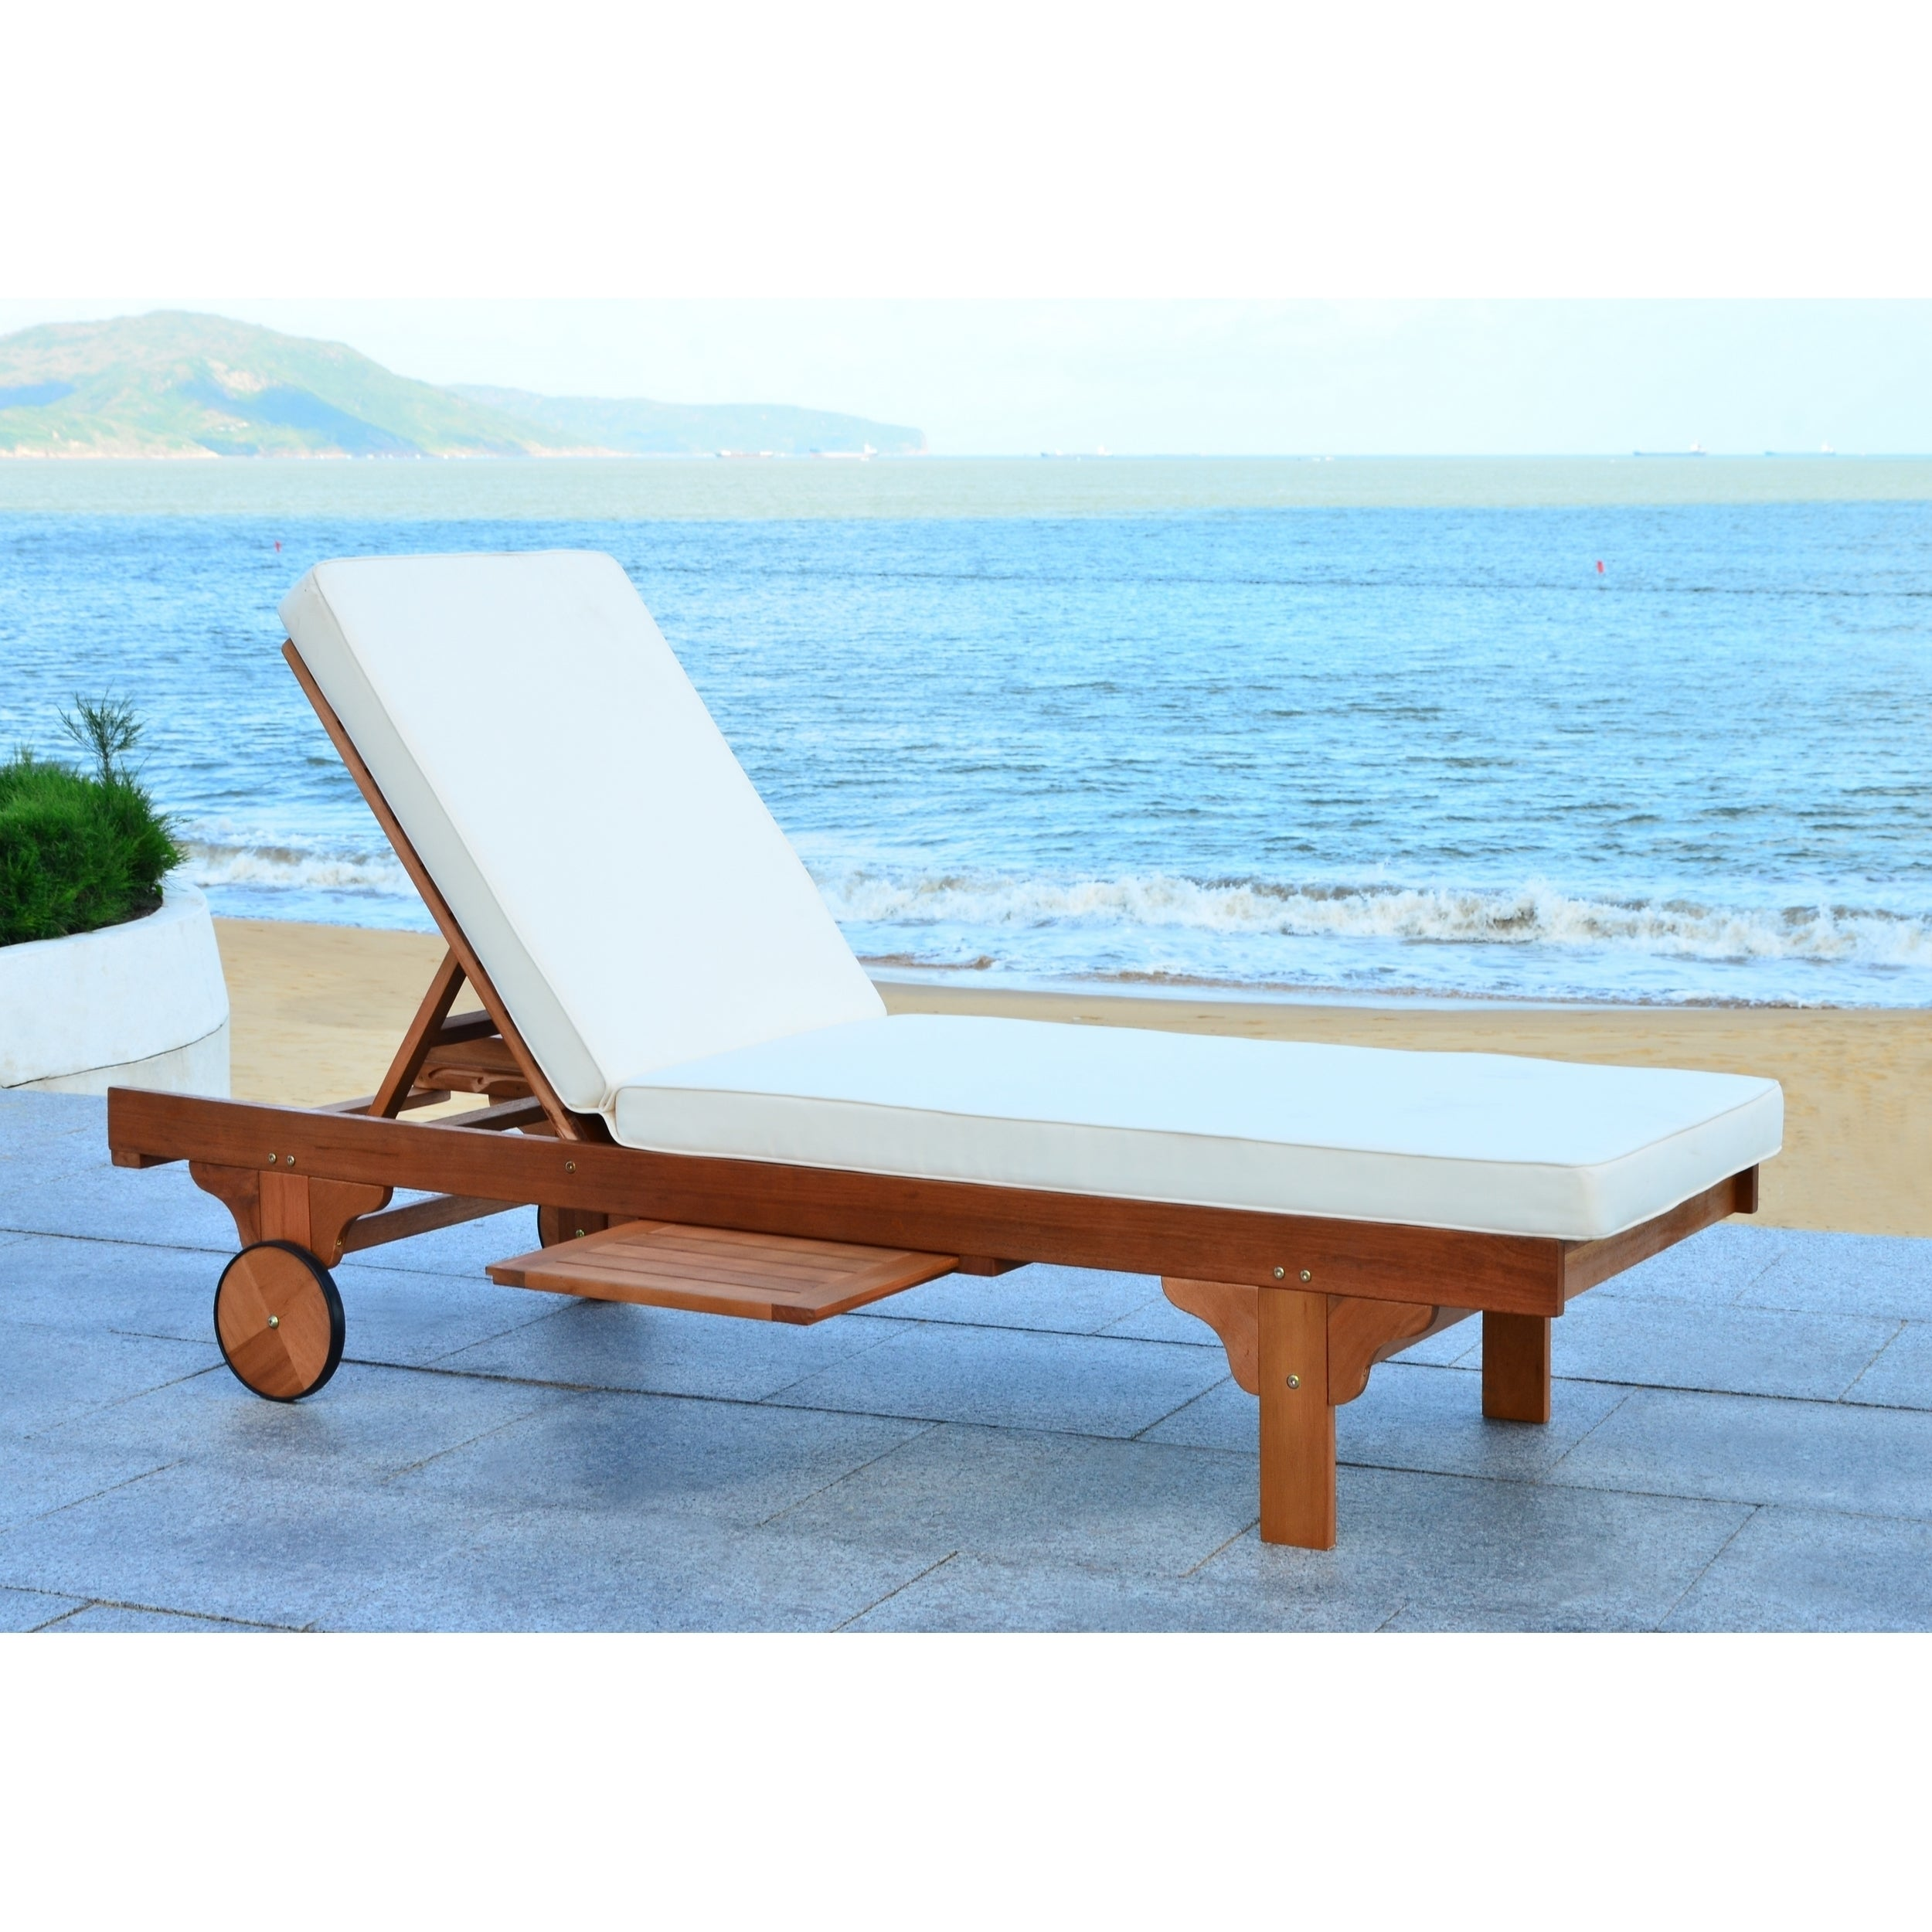 fff9414b51a Shop Safavieh Outdoor Living Newport Brown  Beige Cart-Wheel Adjustable Chaise  Lounge Chair - Free Shipping Today - Overstock - 10300168